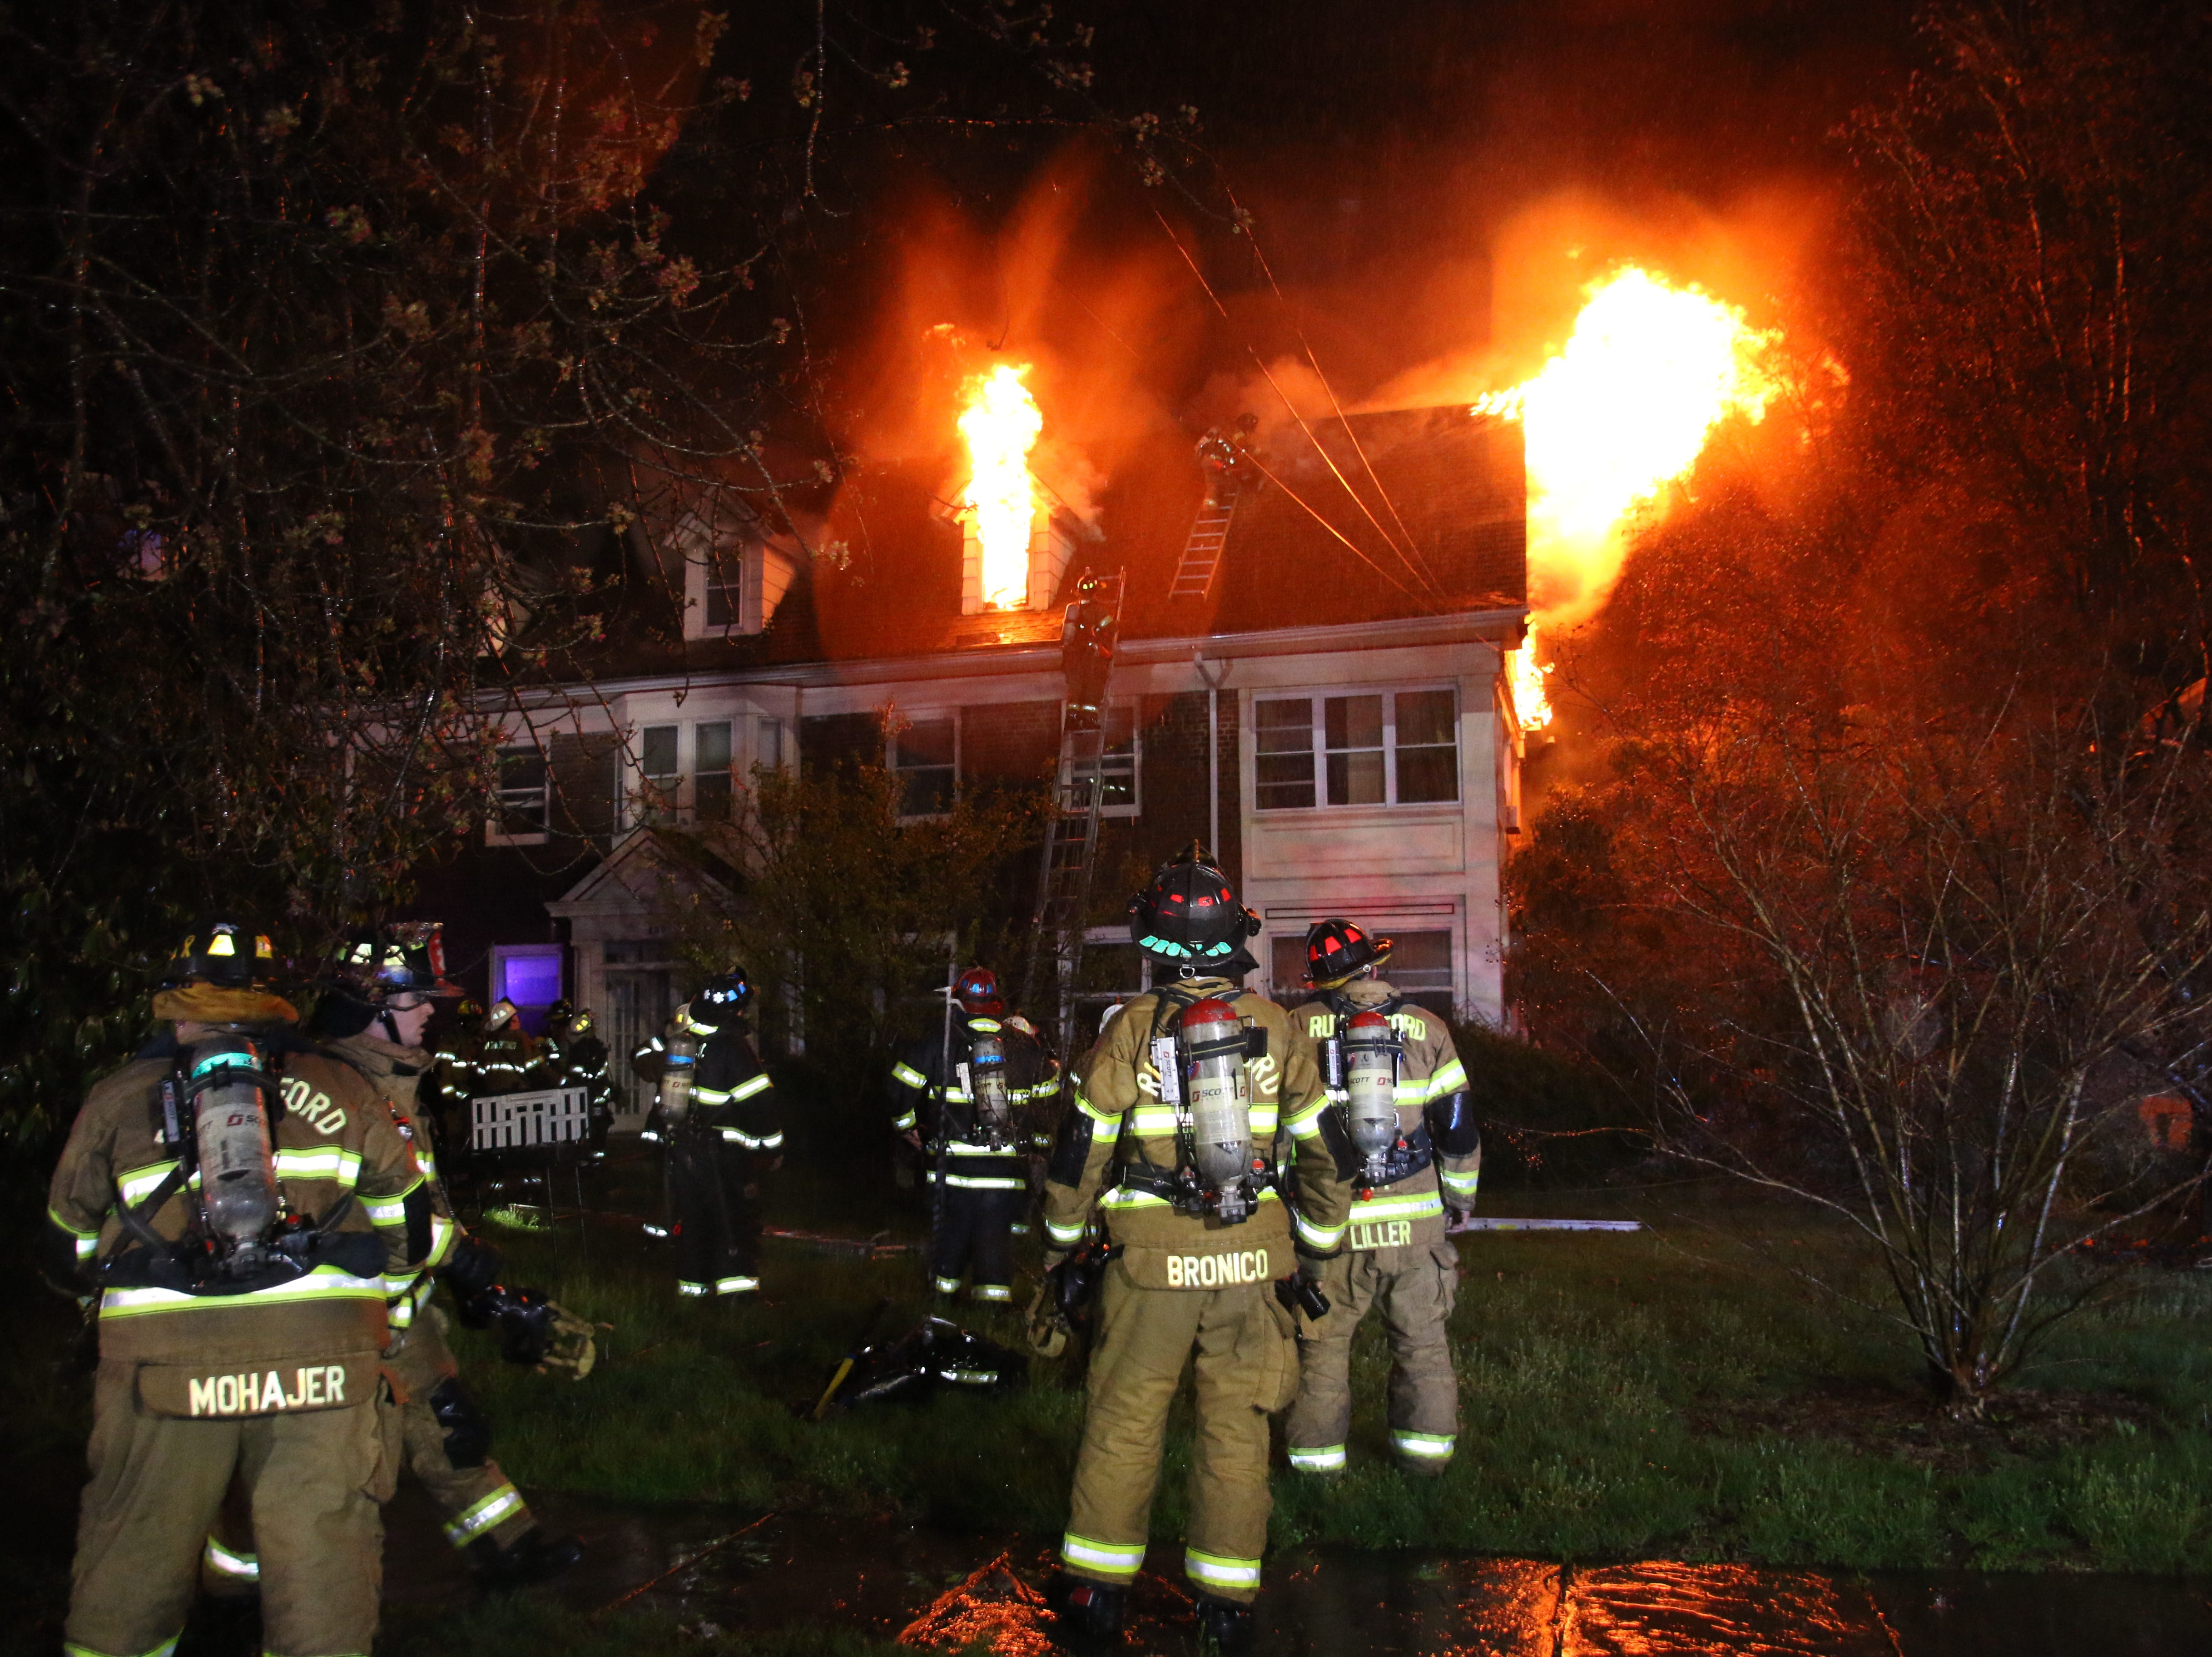 Firefighters battled against a 3-alarm blaze that broke out early Monday morning.